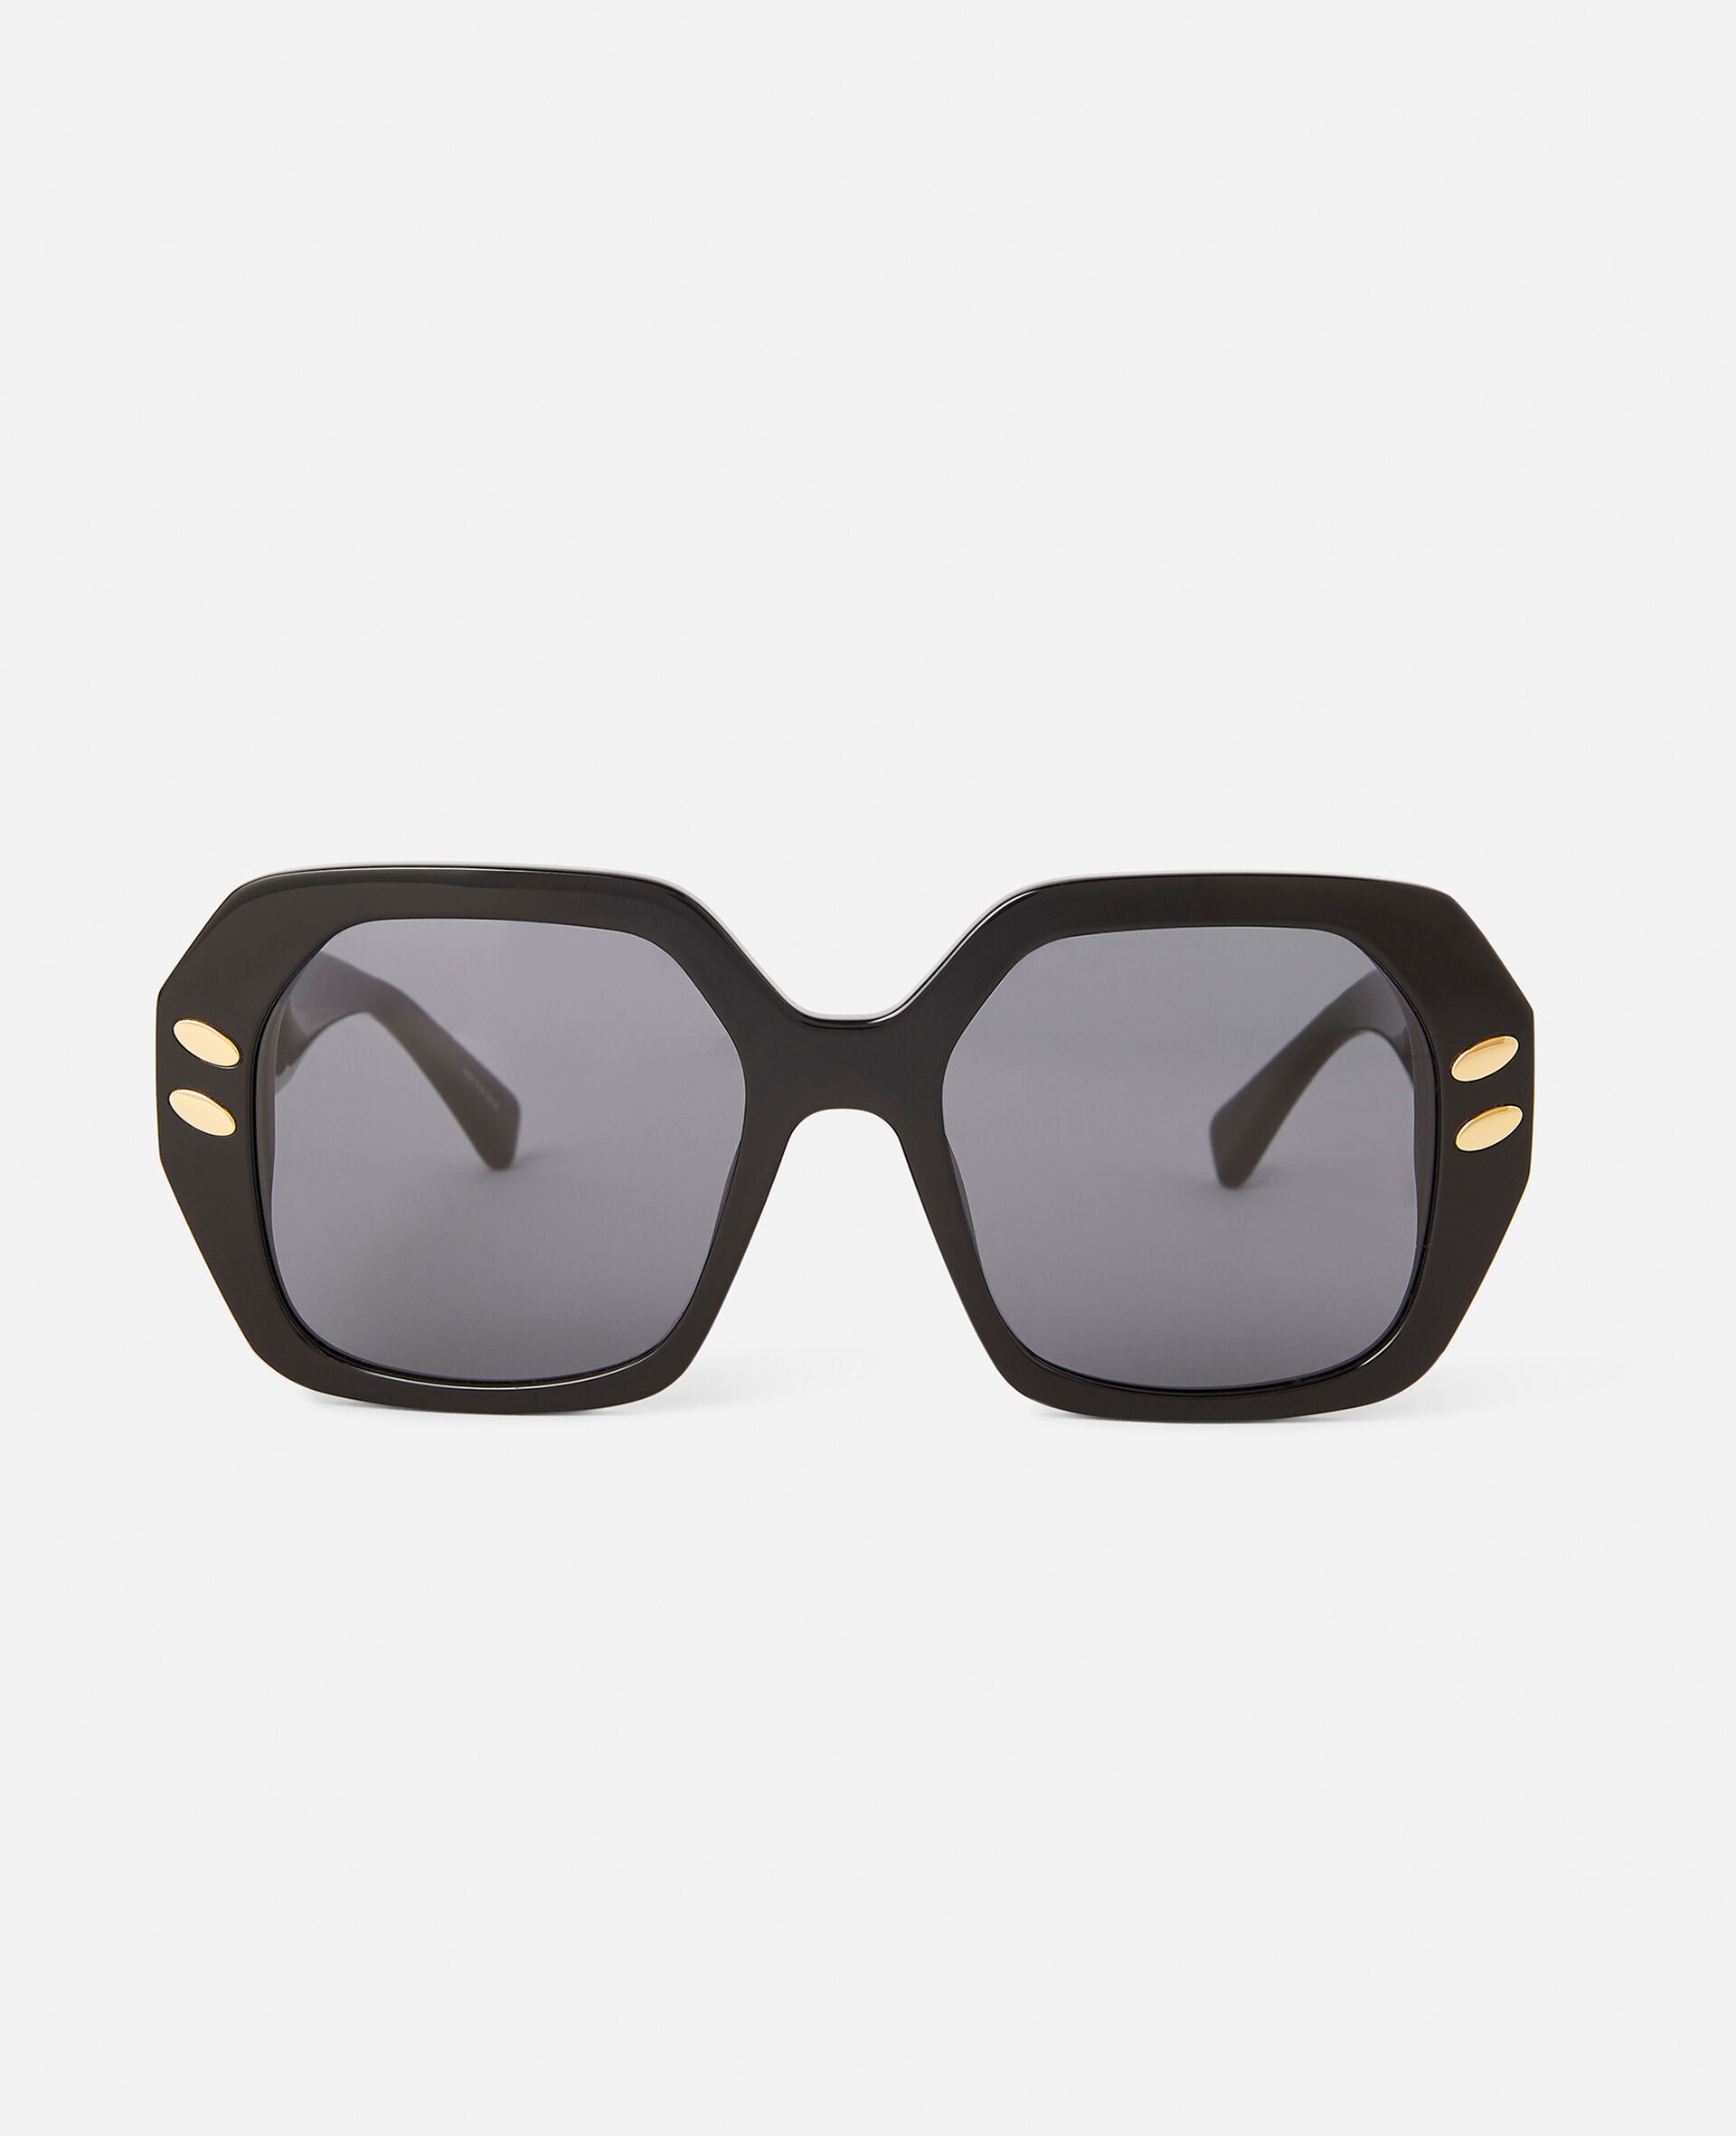 Brown Geometric Sunglasses-Brown-large image number 2